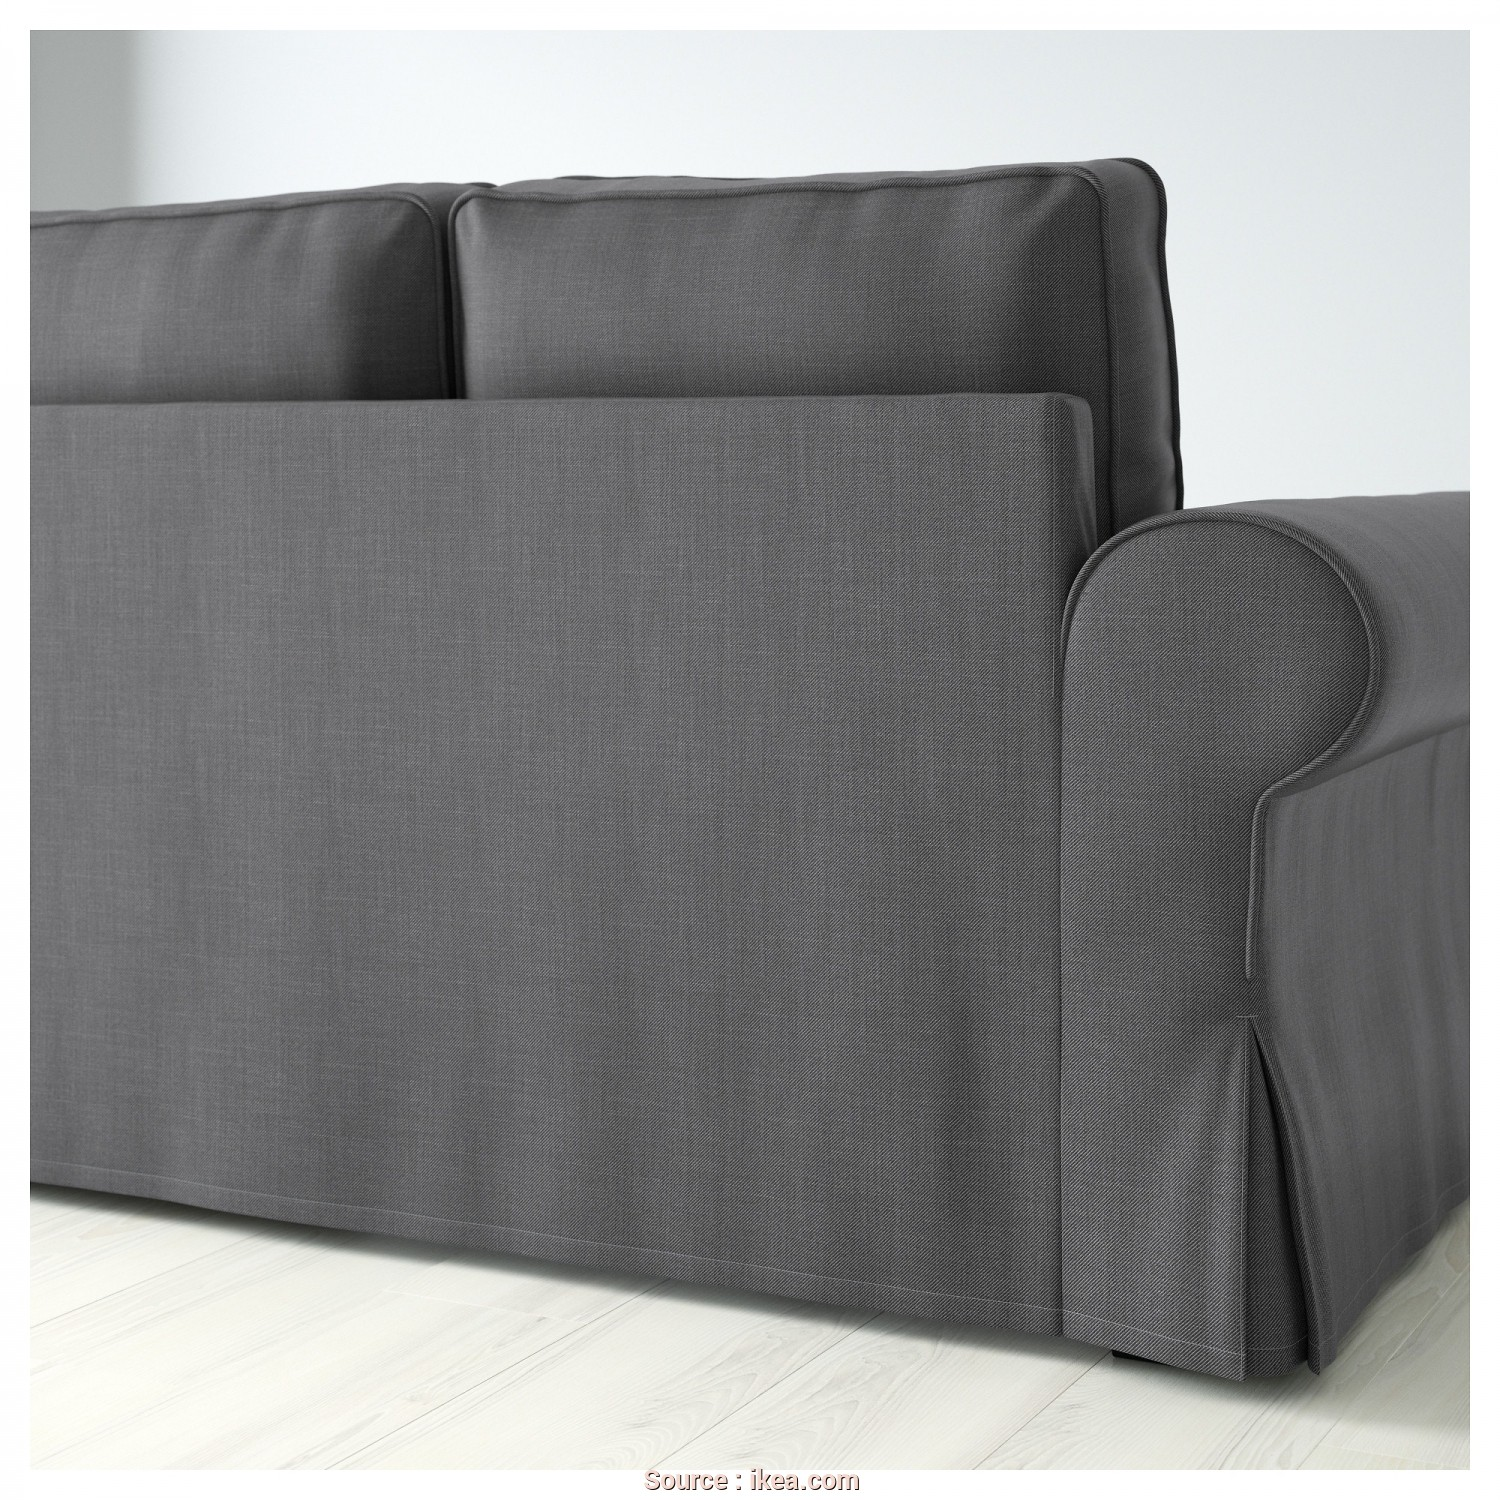 Backabro Canape Ikea, Esotico BACKABRO Two-Seat Sofa-Bed Nordvalla Dark Grey